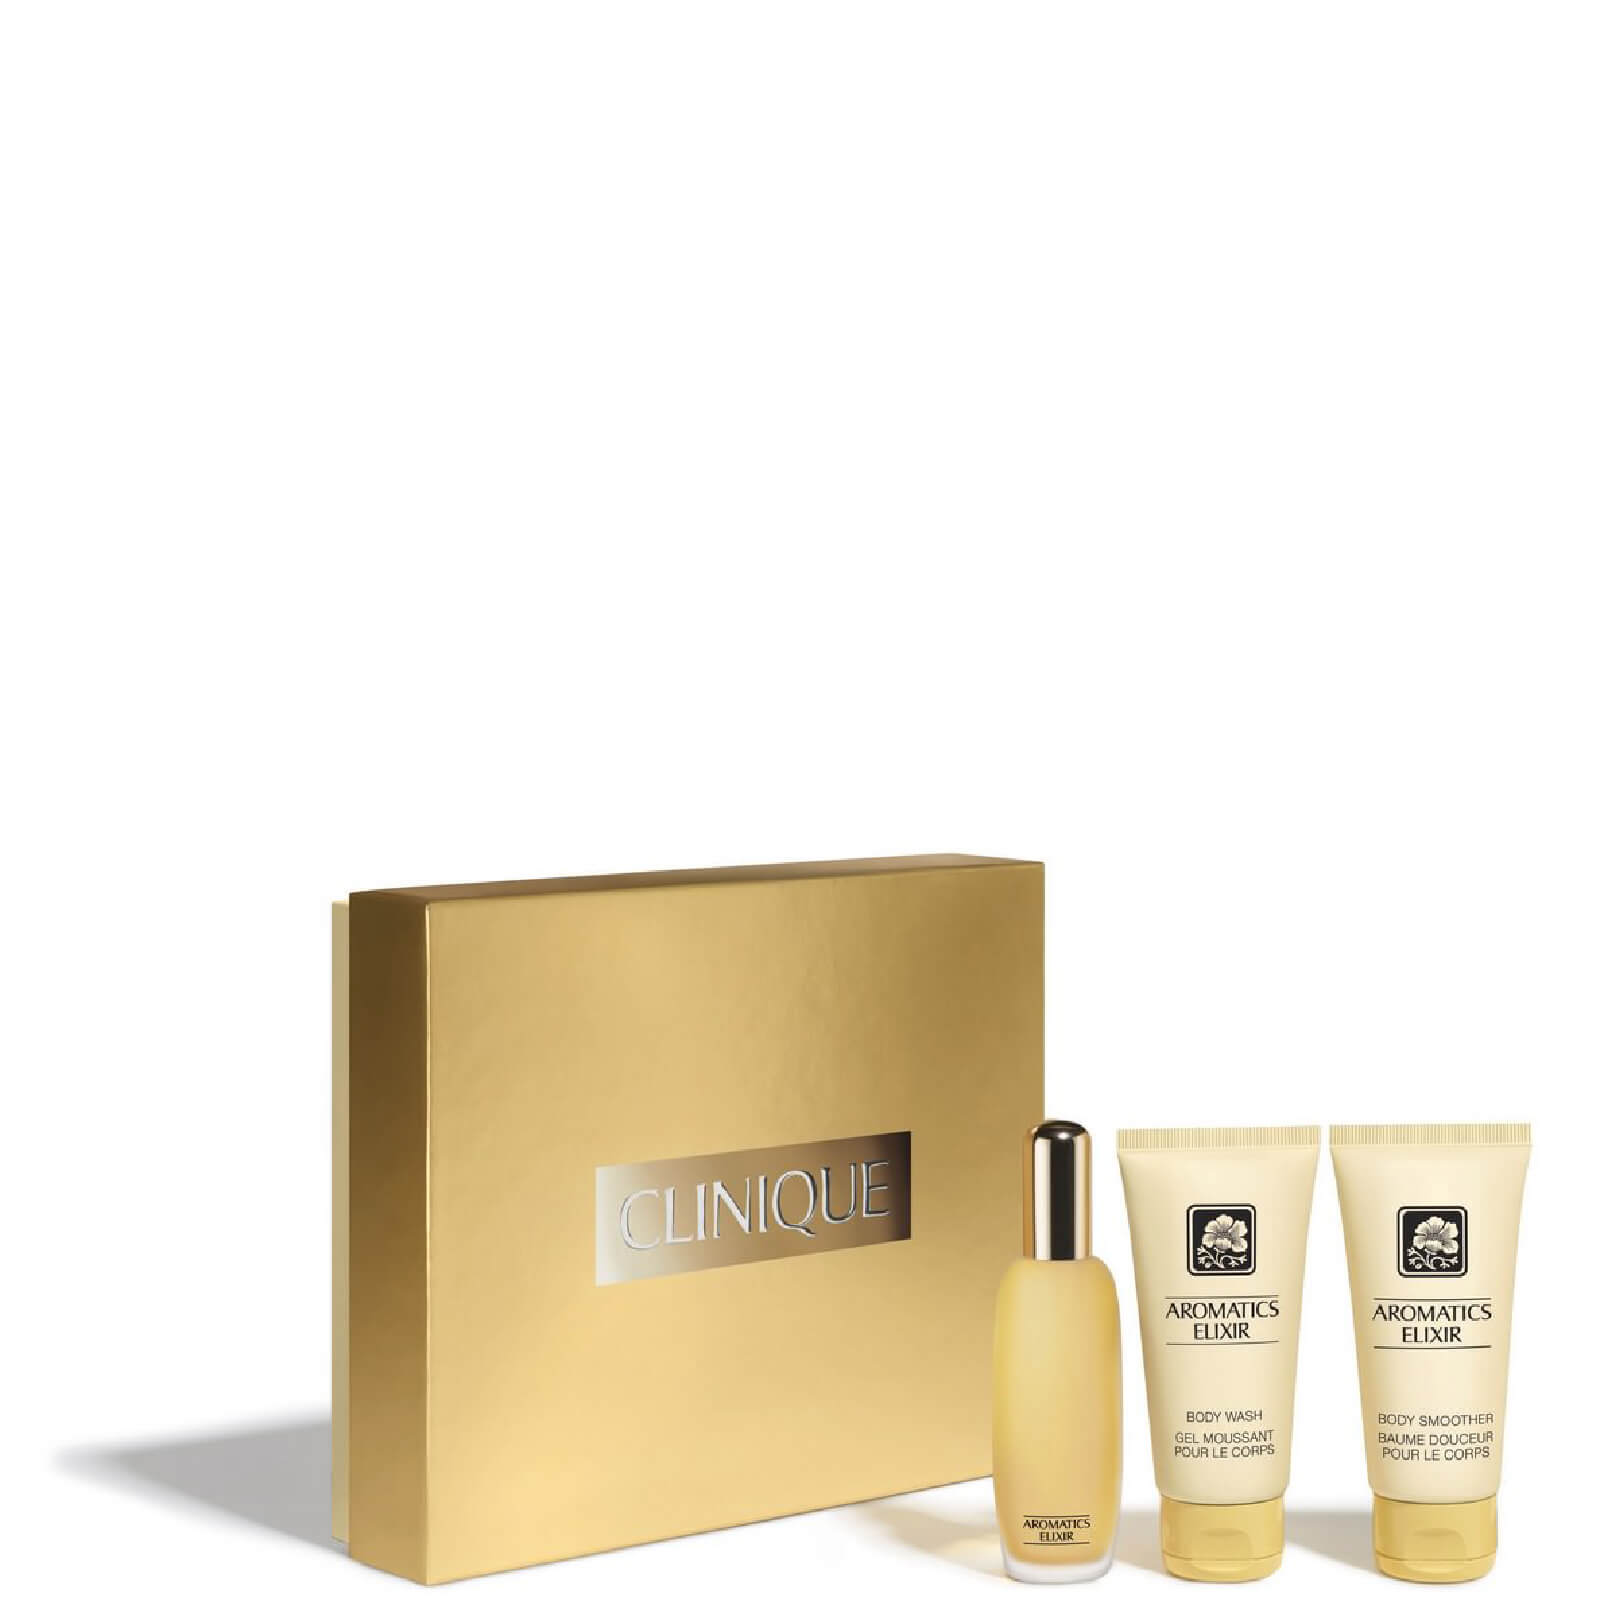 Clinique Clinique Aromatics Aromatics Essentials Clinique Aromatics Essentials Elixir Elixir m0wO8Nvn